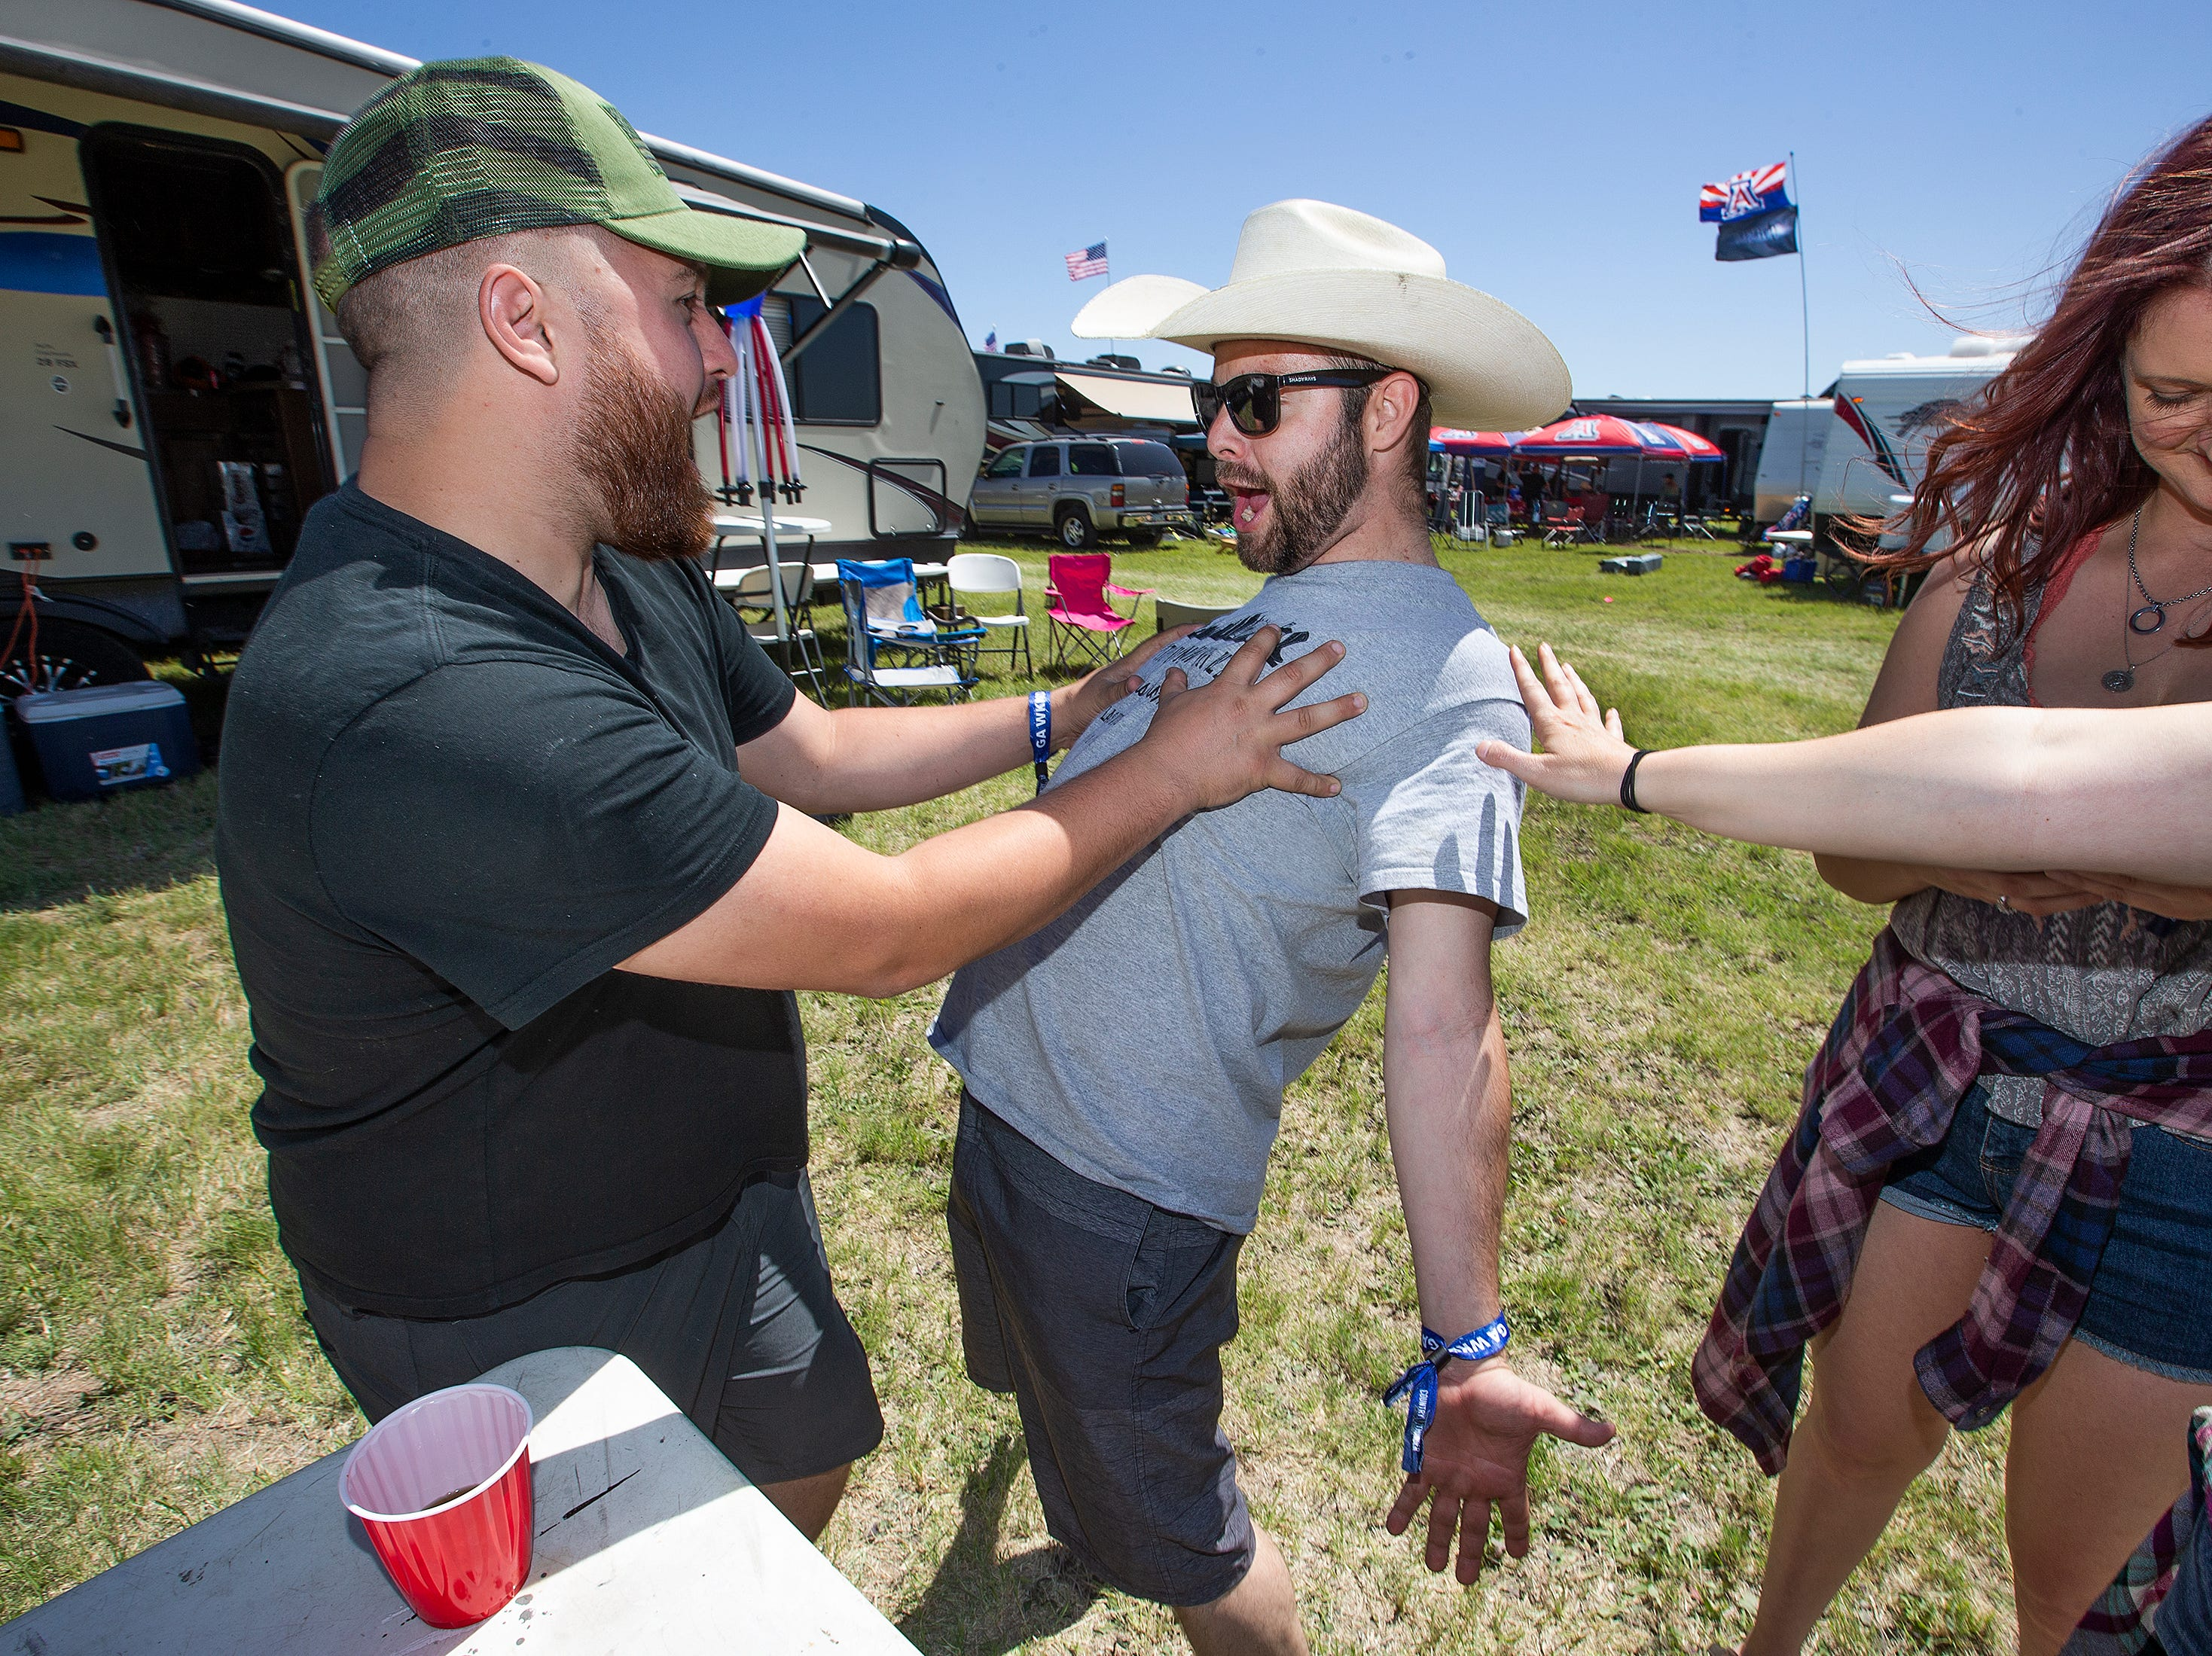 Josh Rivera, 28, Phoenix, left, and Joseph Weaver,28, Henderson, Nevada, have fun at Country Thunder Arizona 2019 Thursday, April 11, 2019.